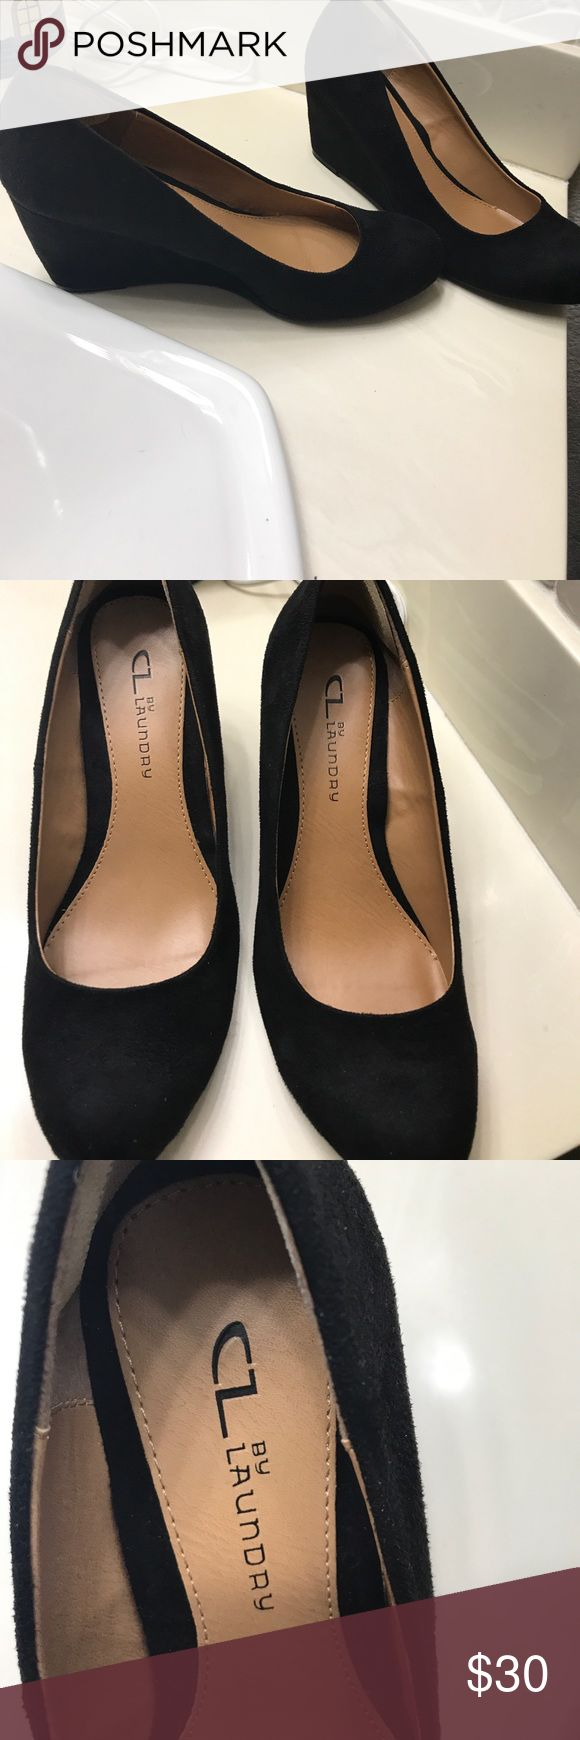 Black wedges Women's 7M black wedges by CL Laundry (Worn only once) cl laundry Shoes Wedges